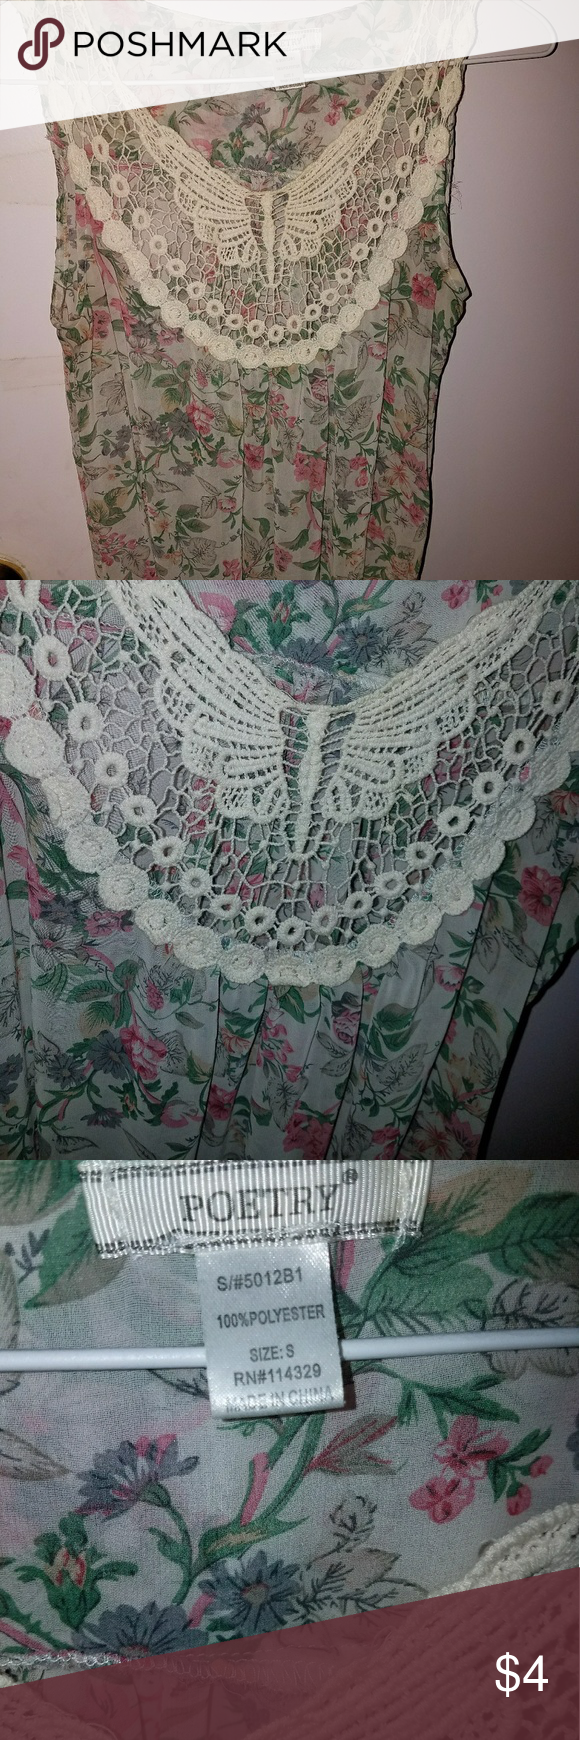 Sheer floral butterfly lace blouse Sheer floral top woth beautiful butterfly detailing on the neckline Tops Blouses